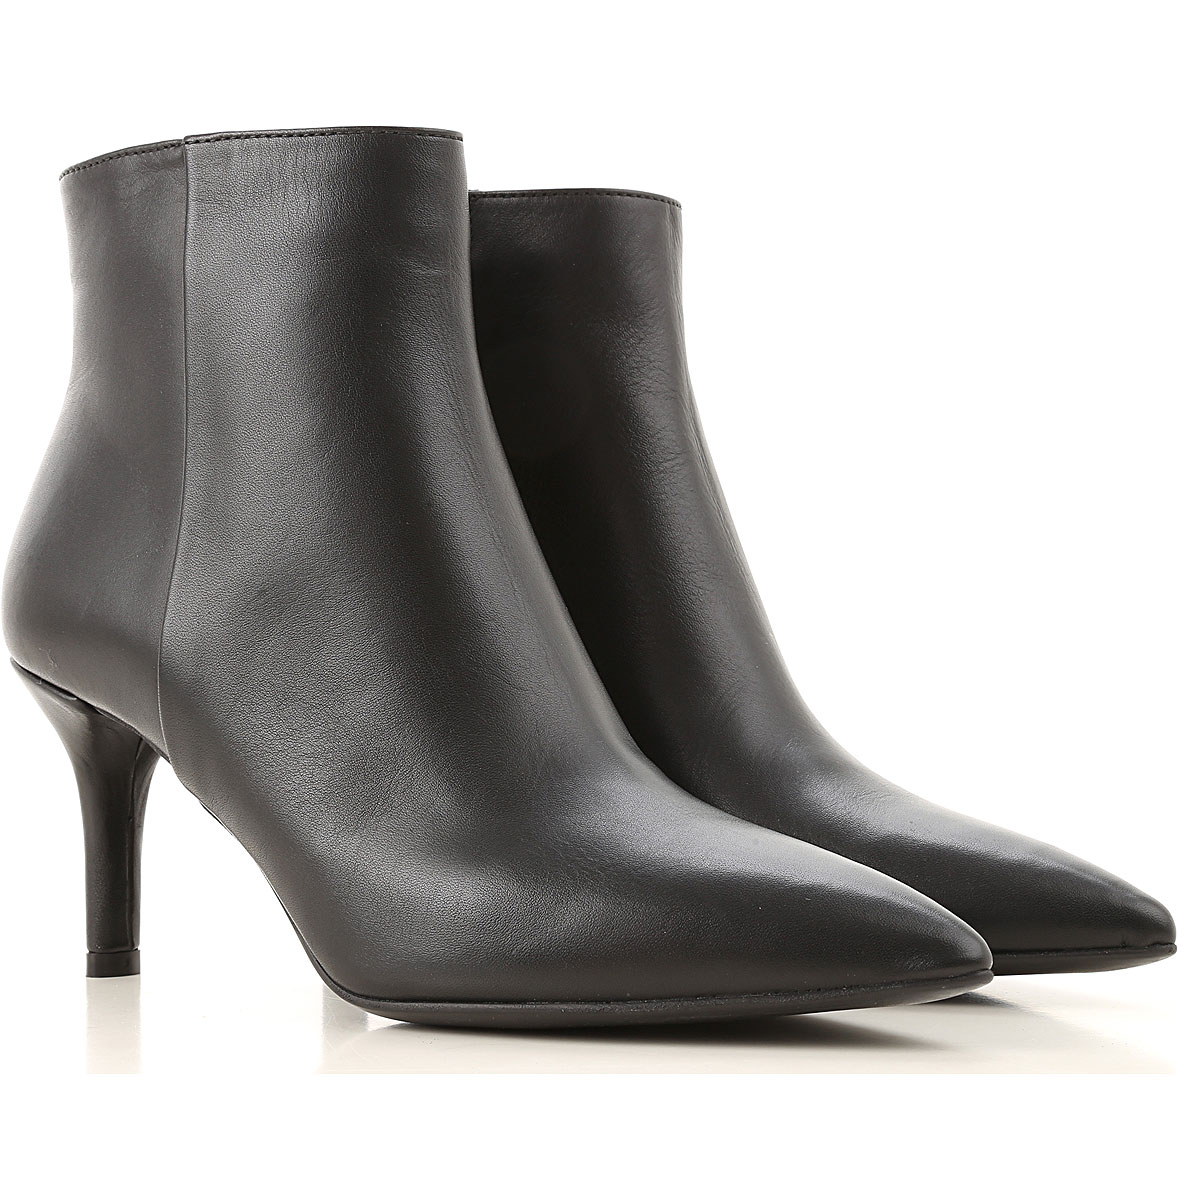 Janet & Janet Boots for Women, Booties On Sale, Black, Leather, 2019, 6 7 8 9